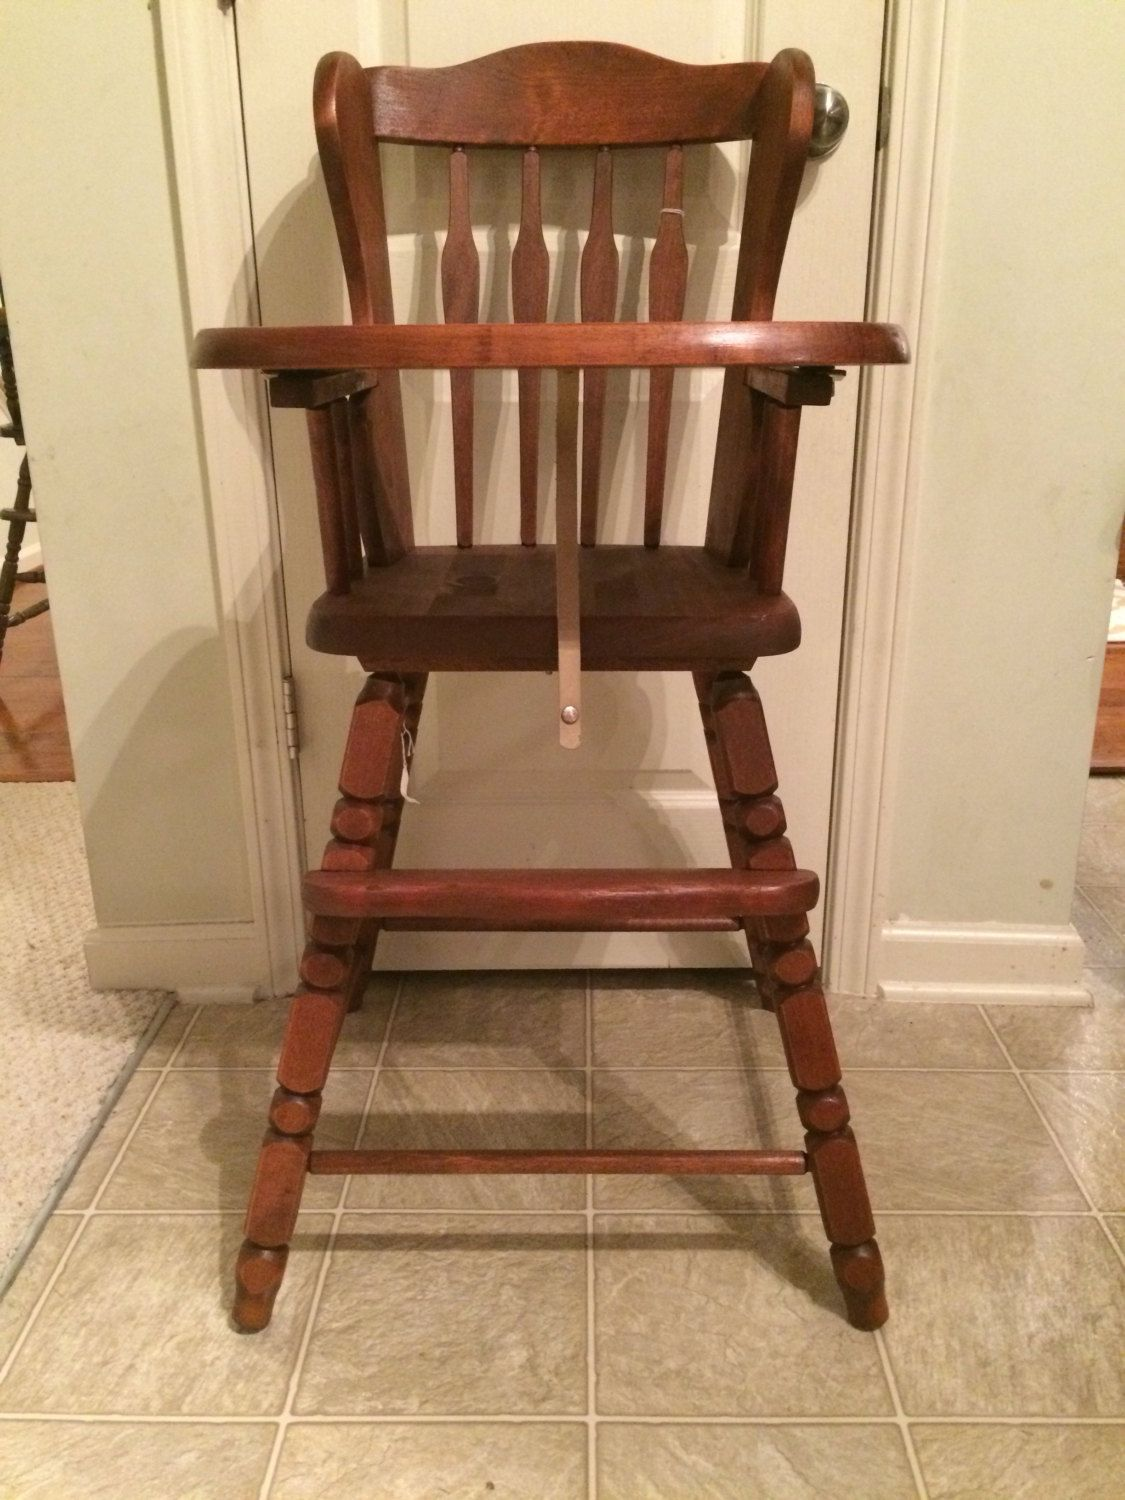 Vintage wooden high chair - Vintage Wooden High Chair Jenny Lind Antique High Chair Vintage High Chair